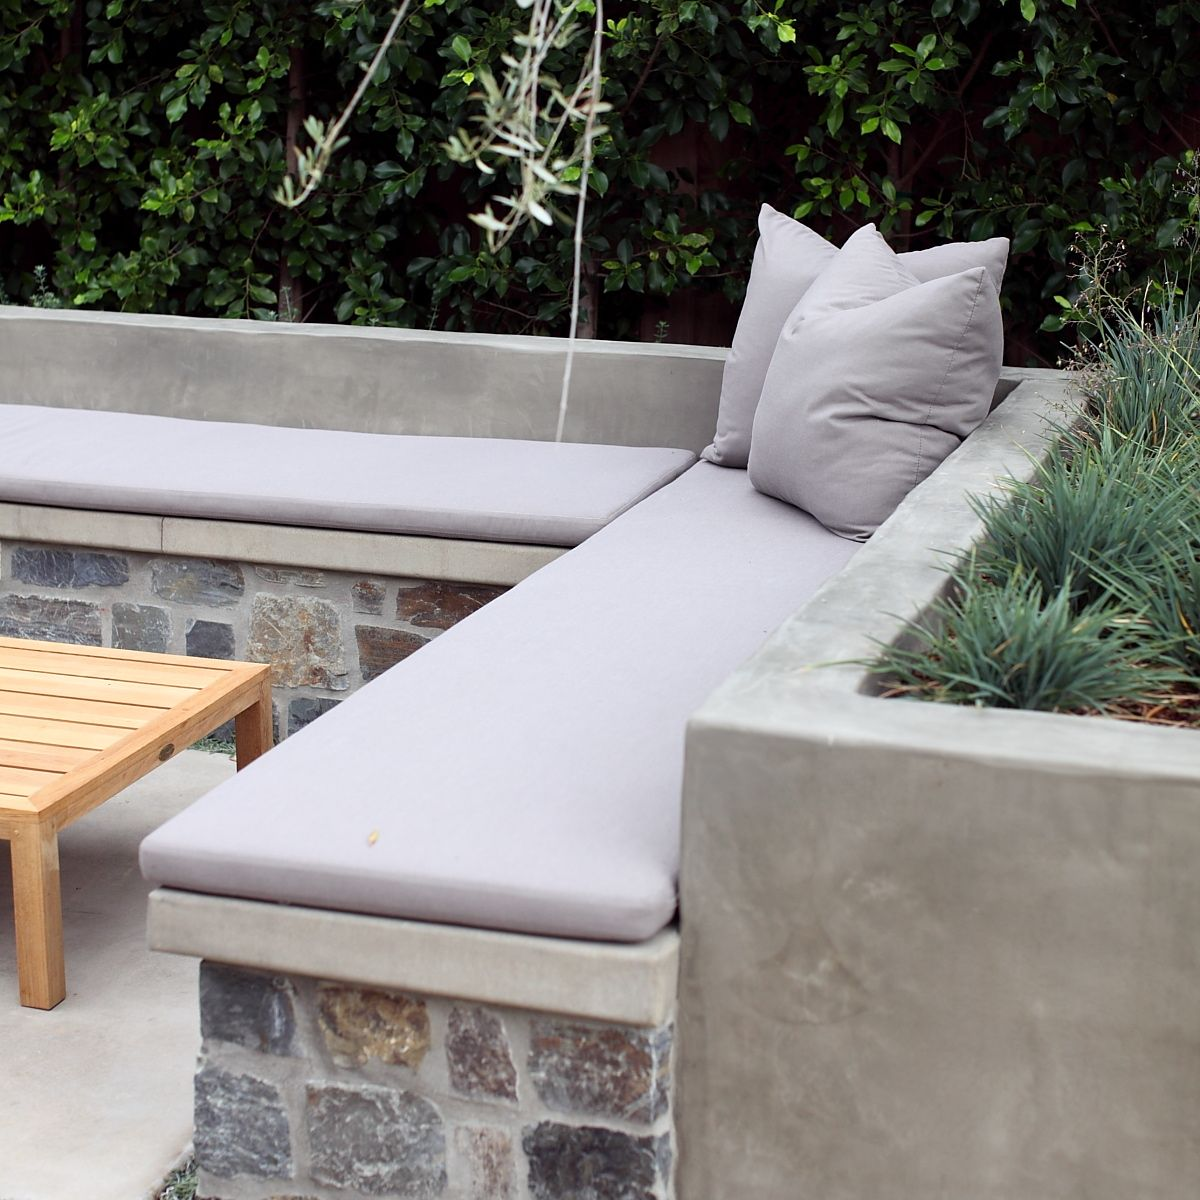 Outdoor Patio Bench Seating: Built In Bench Seating With Cushion. Loon Lake Stone